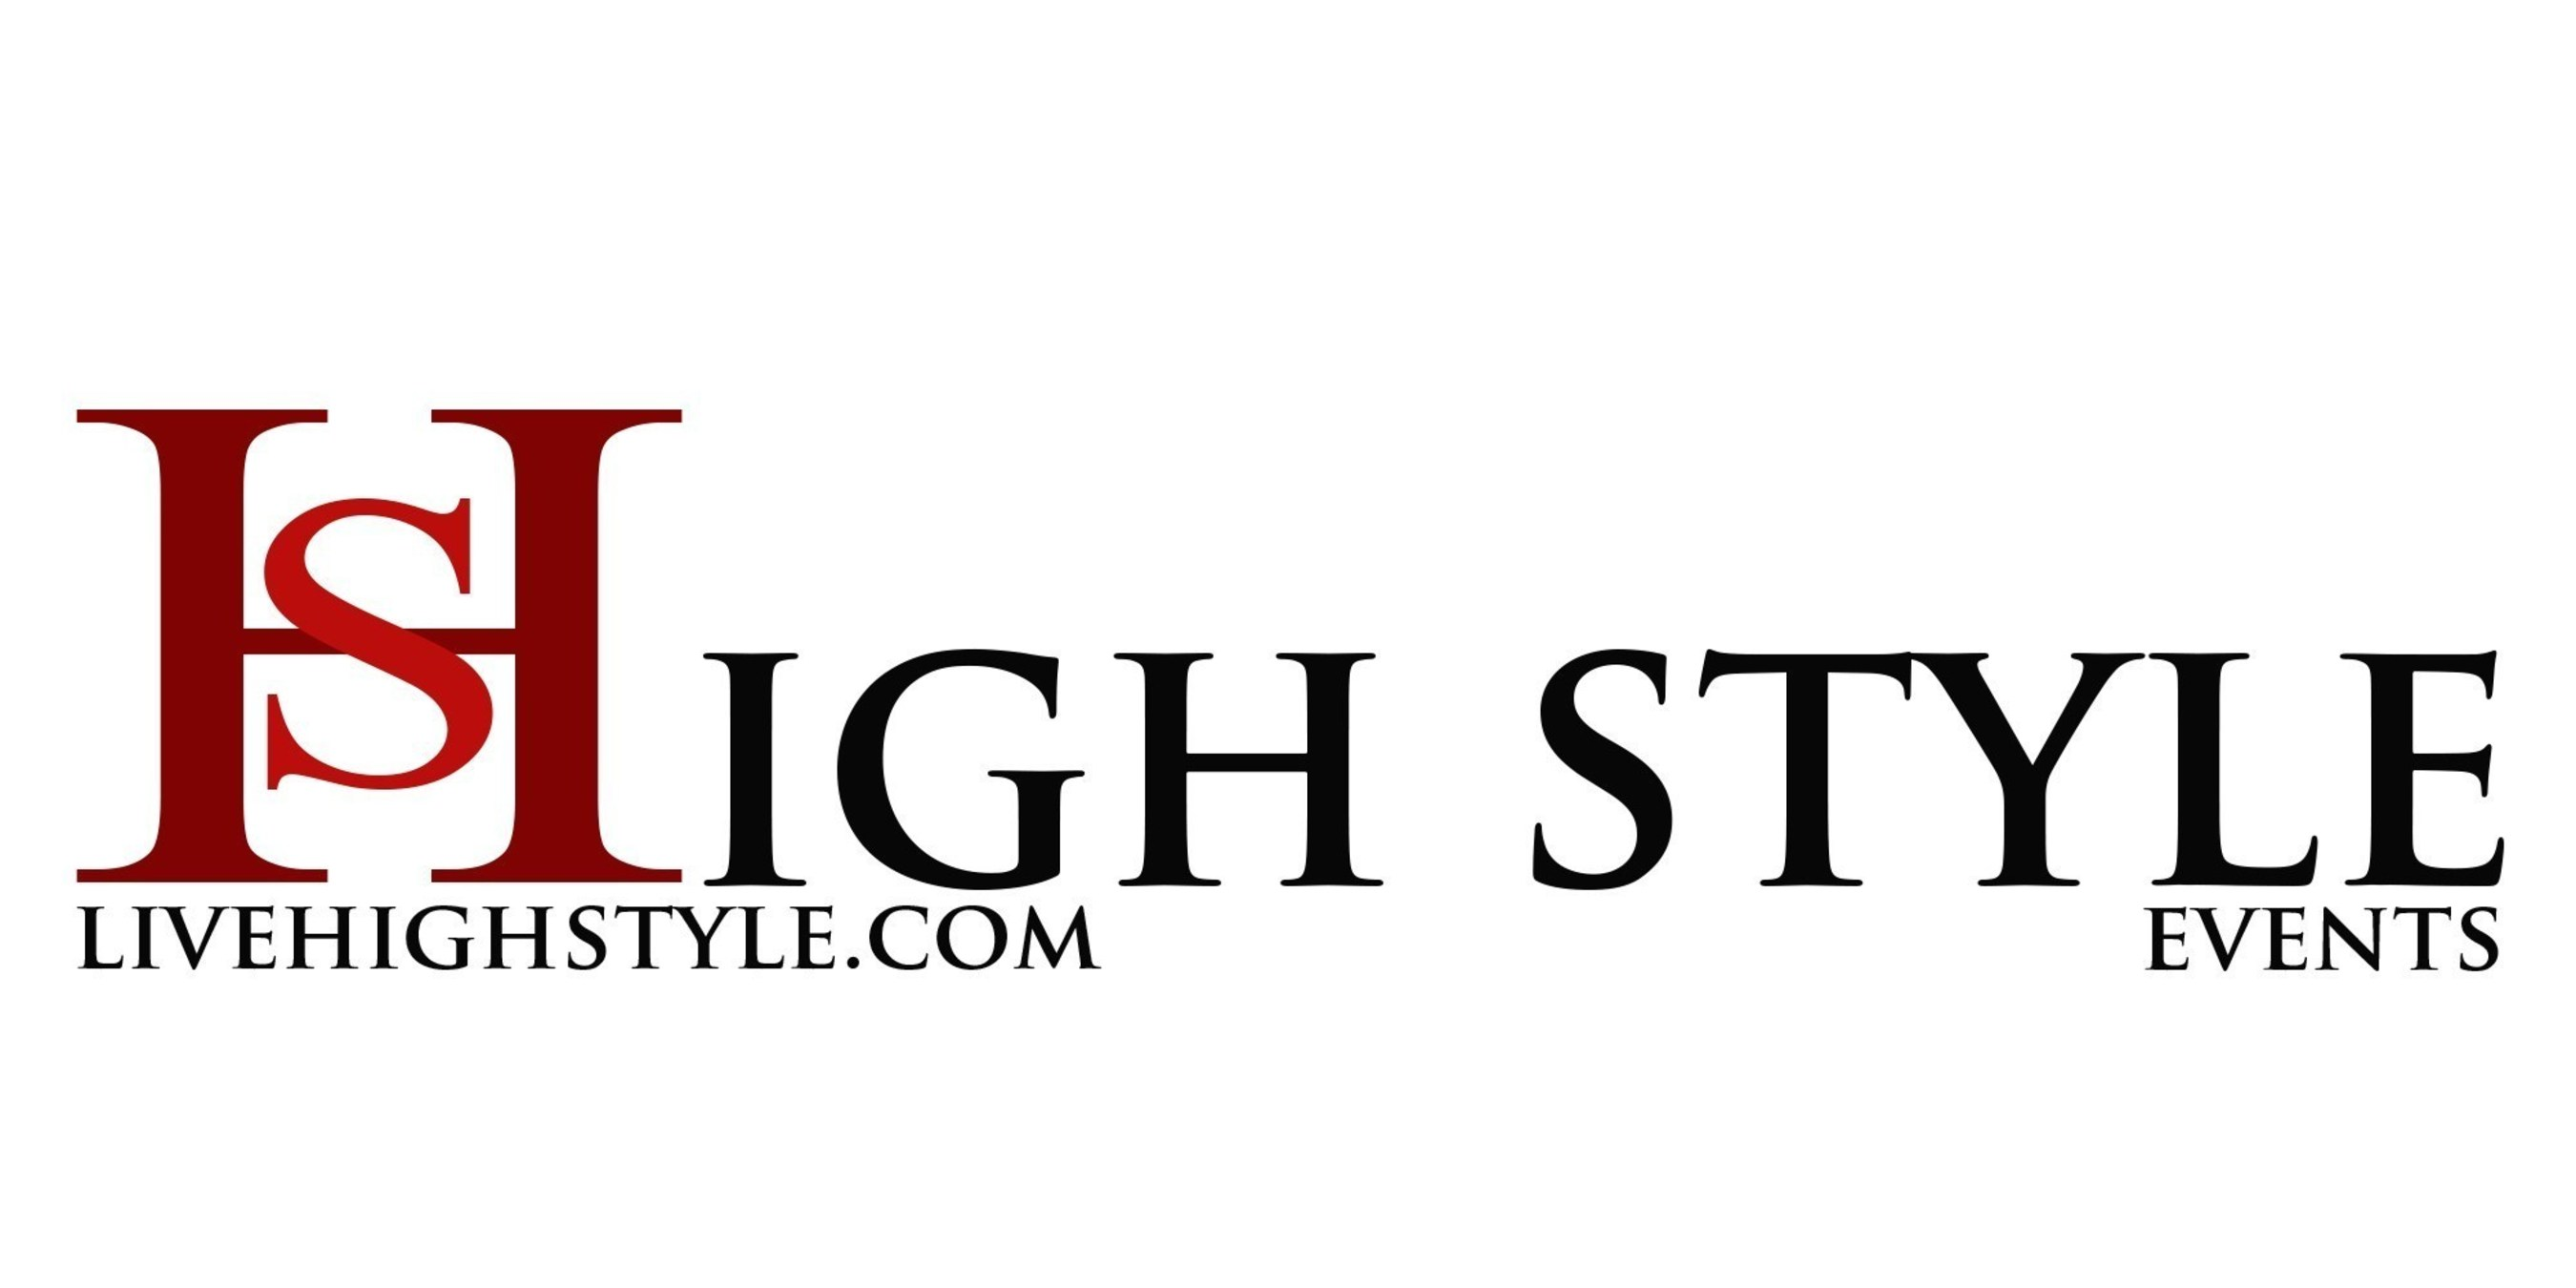 """""""High Style Events"""" were the first to identify and combine the 5 """"major style elements"""" needed to be stylish inside and out; WELLNESS, ART, MUSIC, FOOD, and FASHION. """"High Style - Savannah"""" is country's first """"interactive whole style event."""" Charity work is such a large part of a person's personal style - and that's where our proceeds go. We are resolute in the fact that the storms of life WILL NOT define a person and it DOES NOT stop you from living in style; high style."""" ..."""